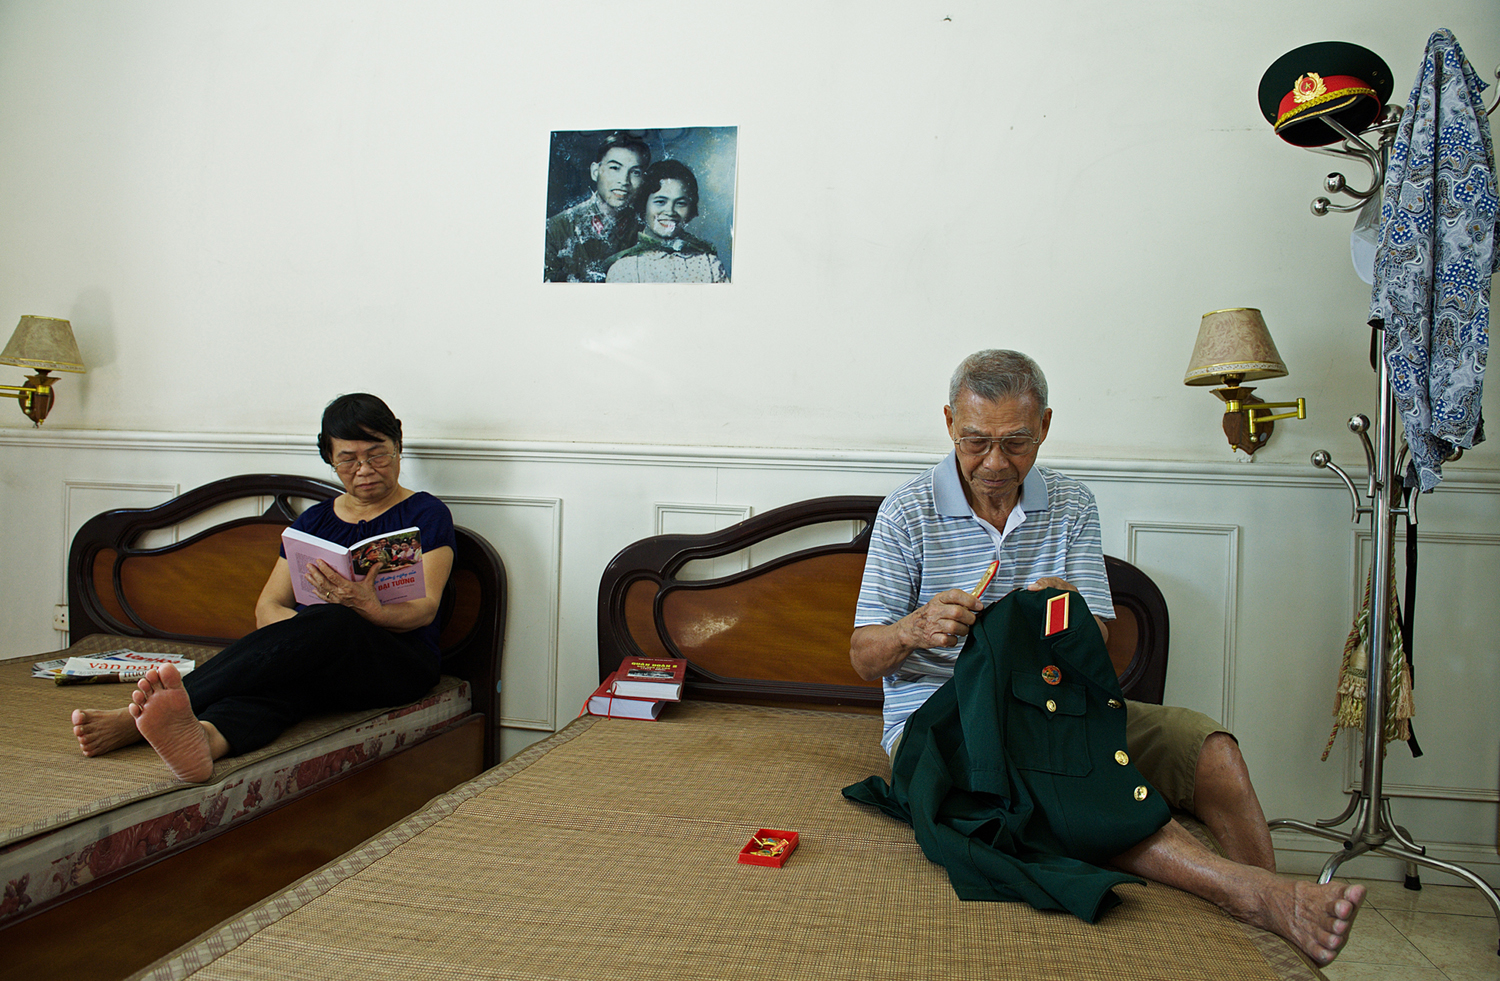 Destiny3 : In the bedroom of General Huy and his wife (Mrs Minh Thuan). Taken at his home, 11. 2014.